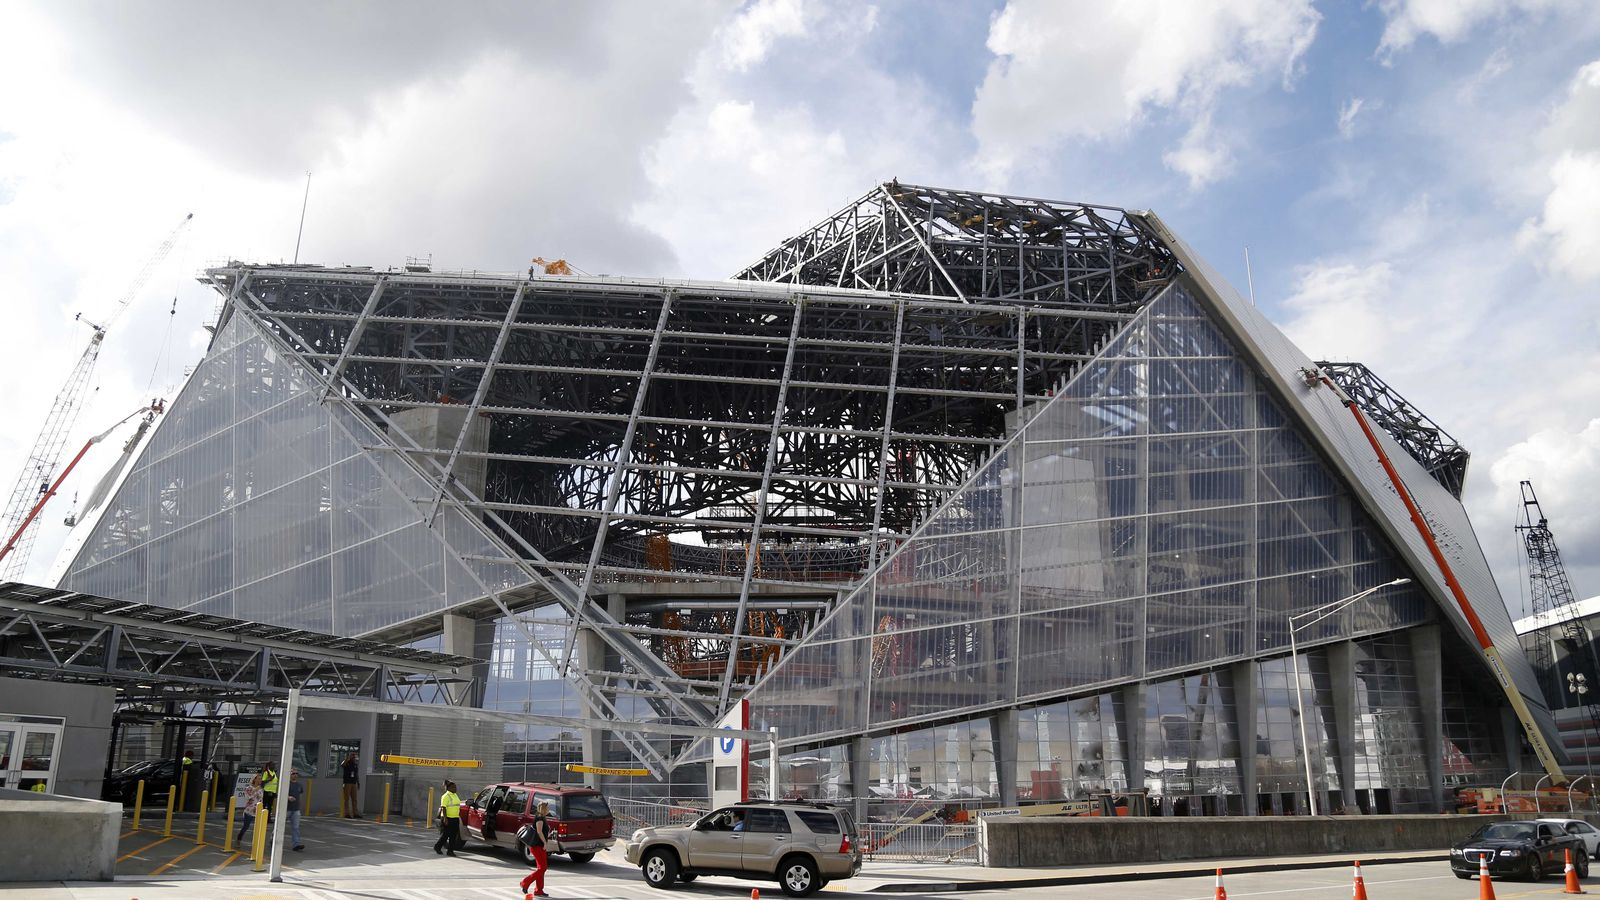 New Atlanta Falcons Stadium S Roof Has Some Issues